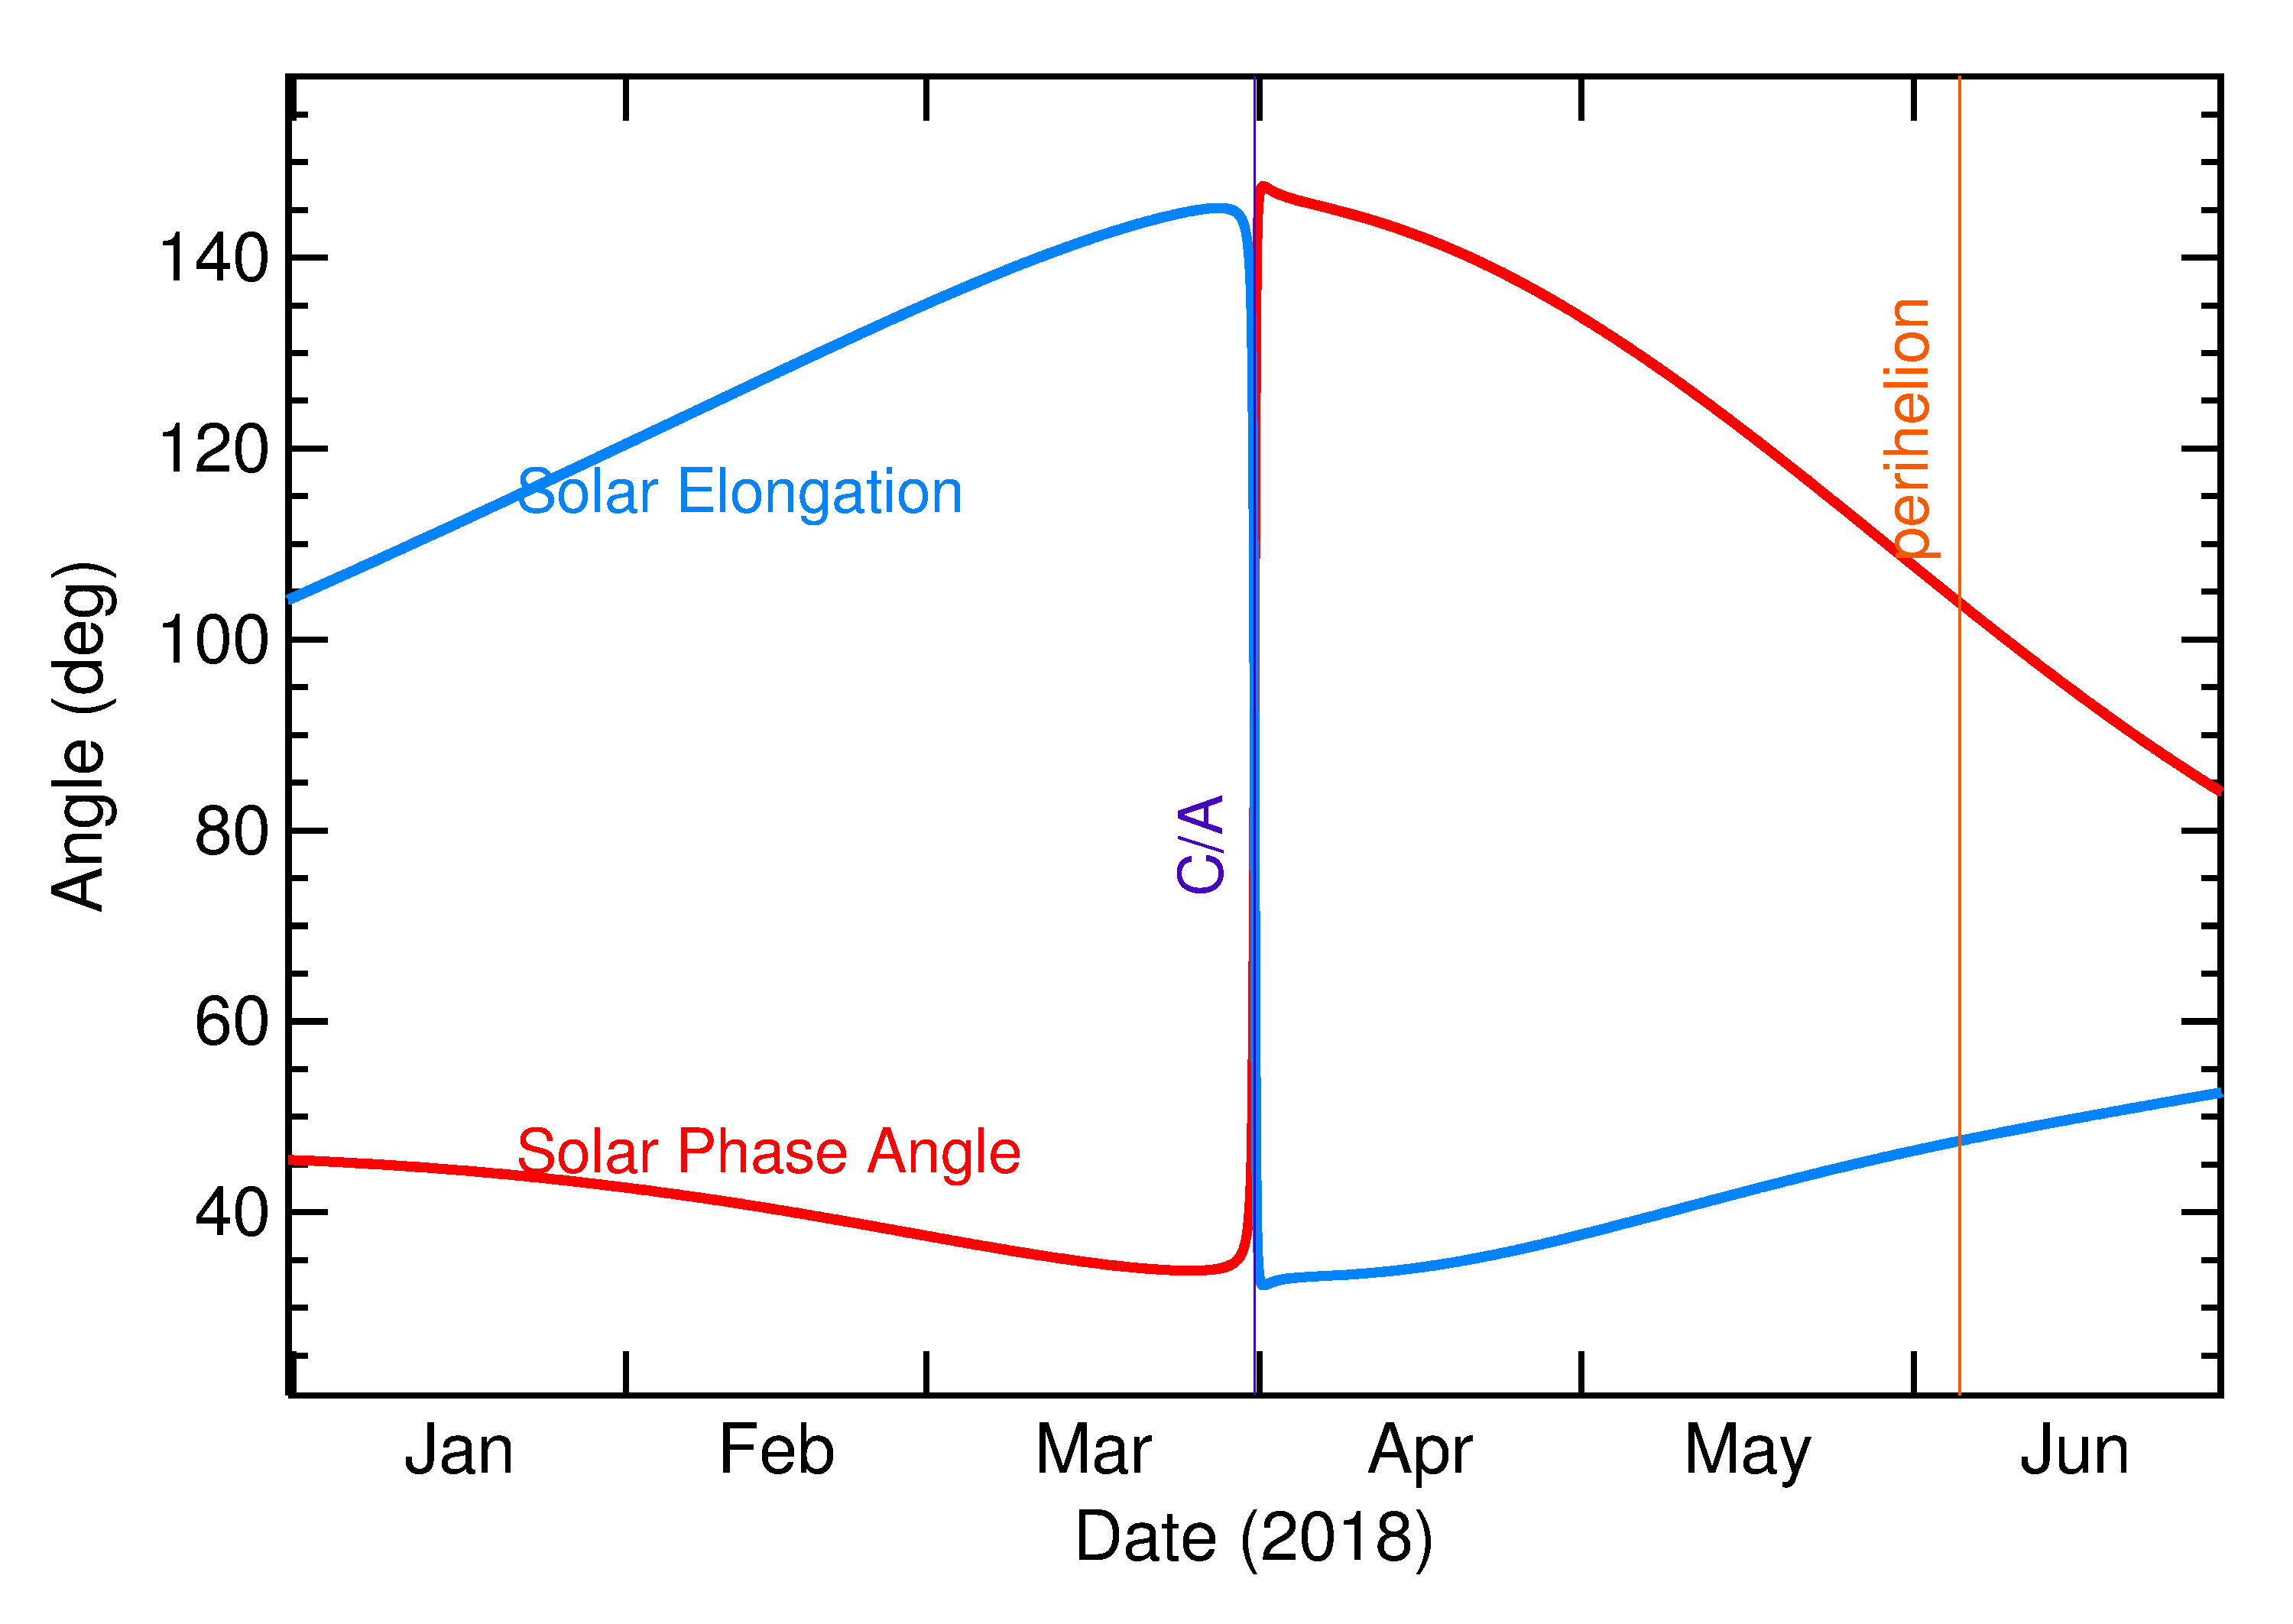 Solar Elongation and Solar Phase Angle of 2018 FK5 in the months around closest approach